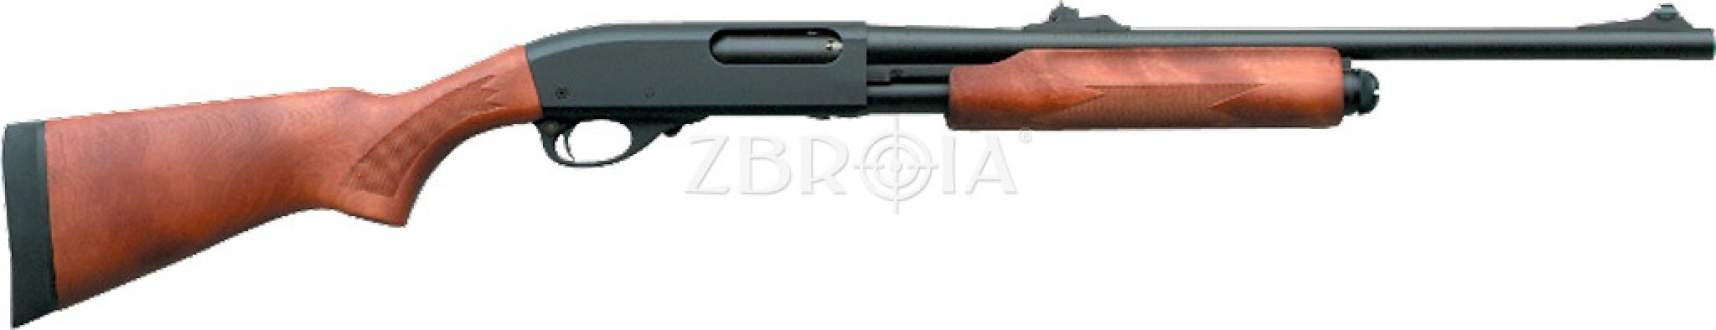 Ружье Remington 870 Express Deer кал. 12/76